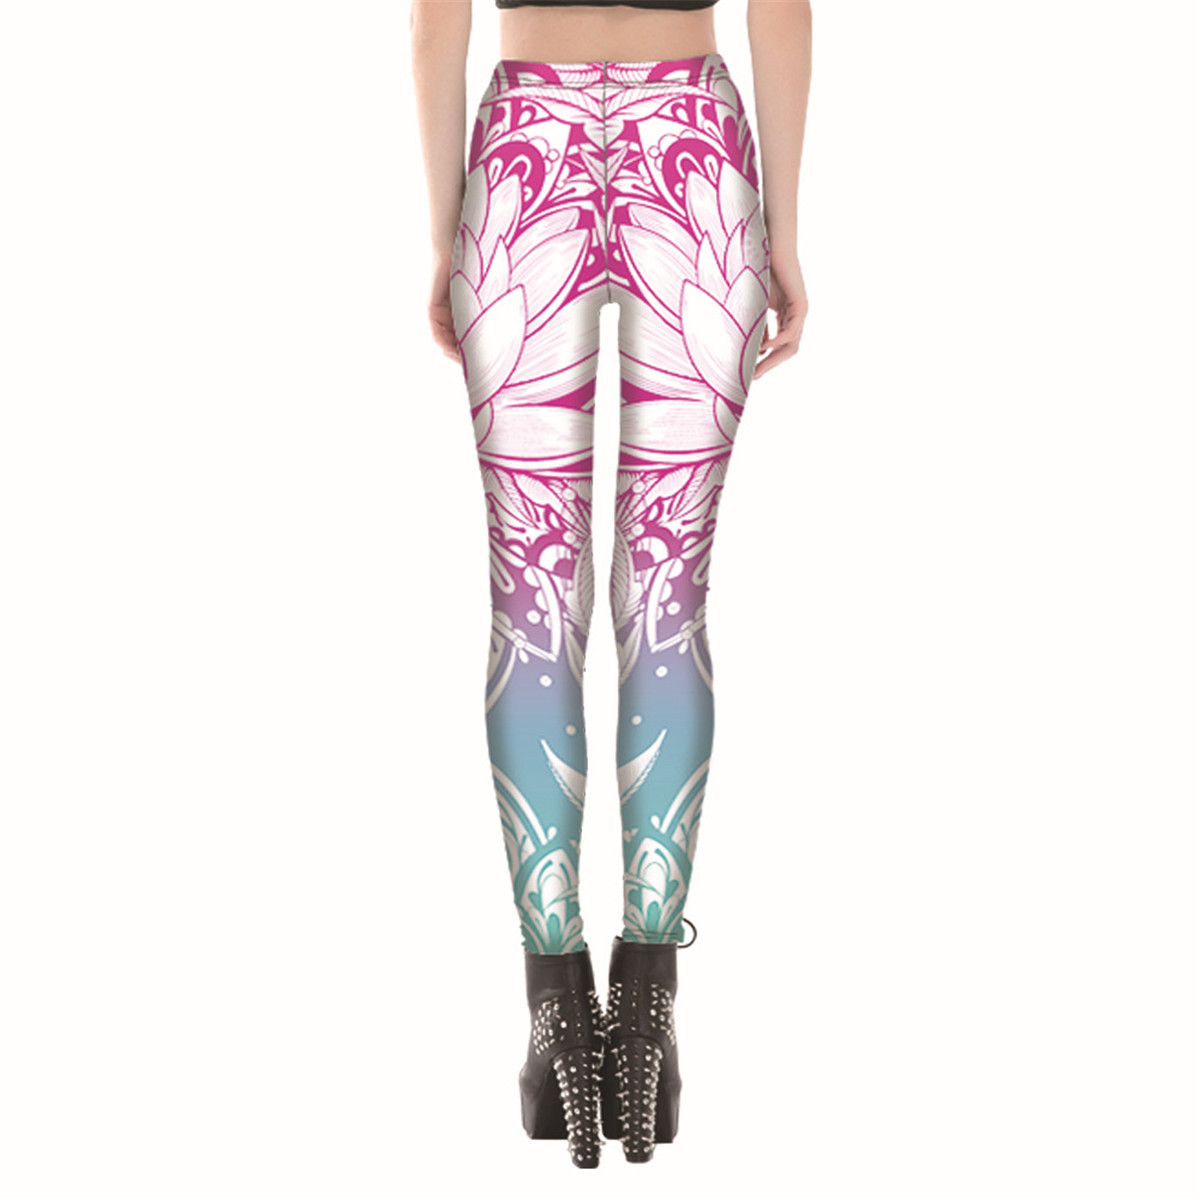 200faca95a3cd Womens Gradient Flowers Leggings Streetnic Workout Fitness Pants Ladies Lotus  Legging Pink Floral Printed Trousers Gifts